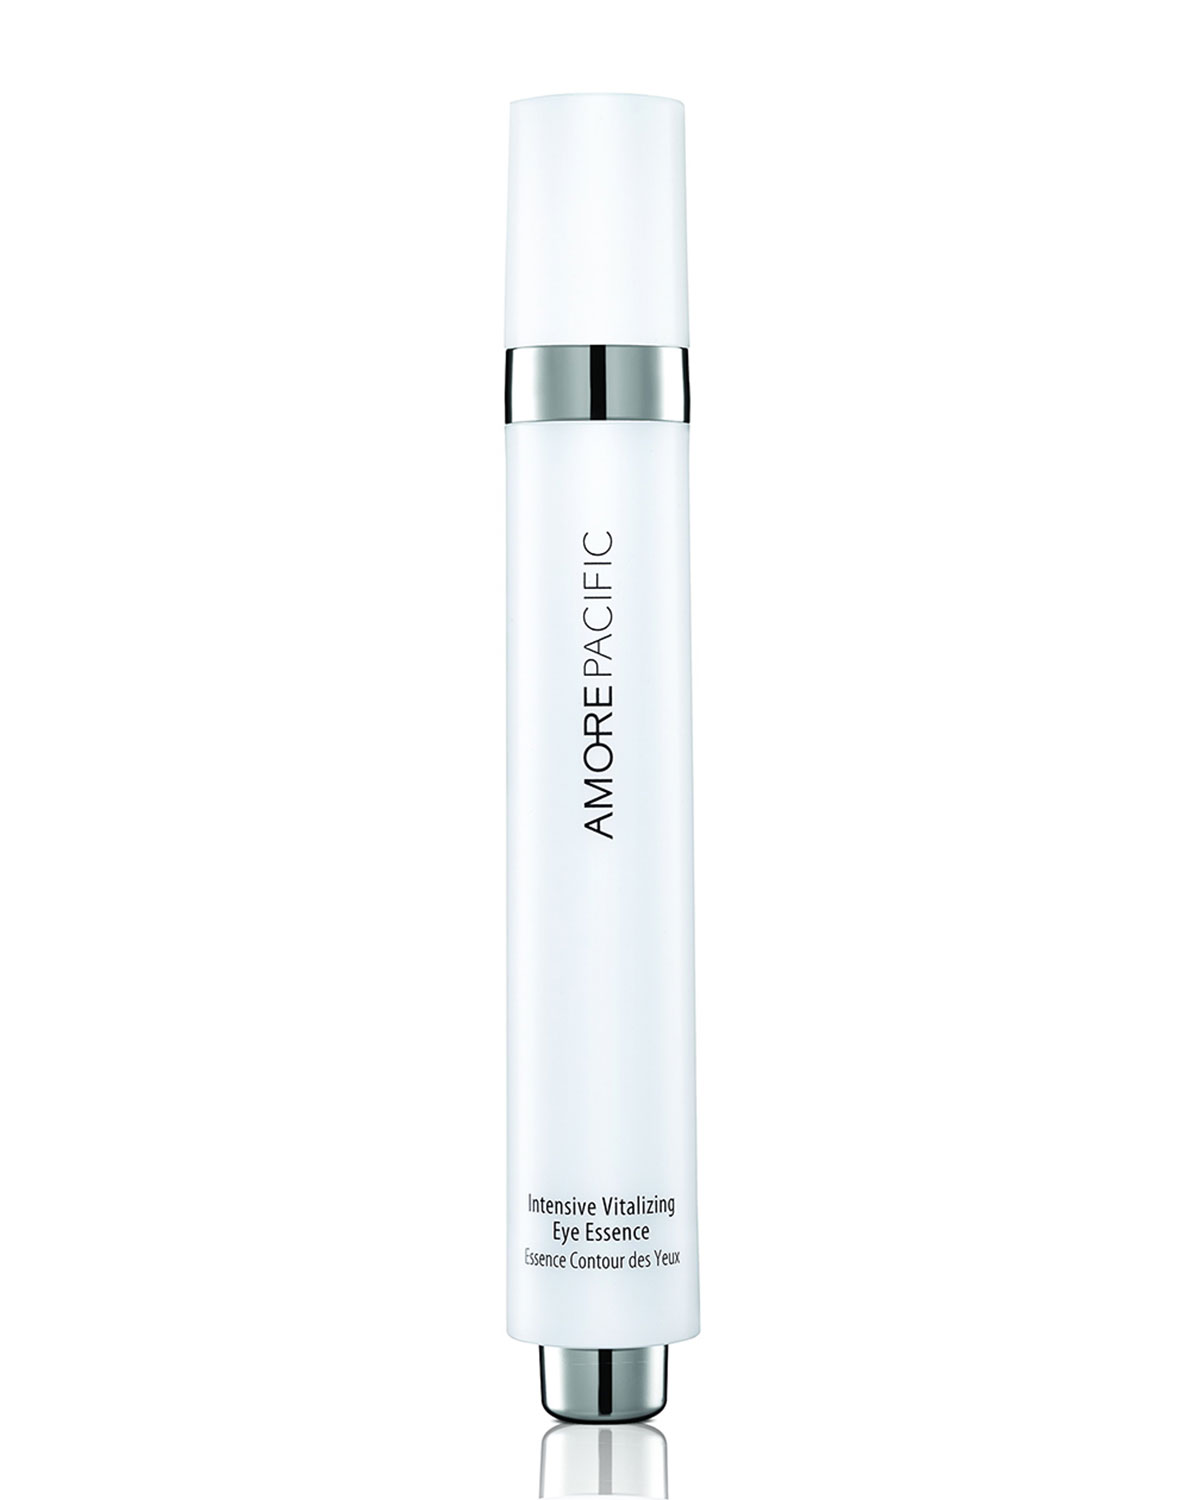 Intensive Vitalizing Eye Essence 0.5 Oz/ 15 Ml